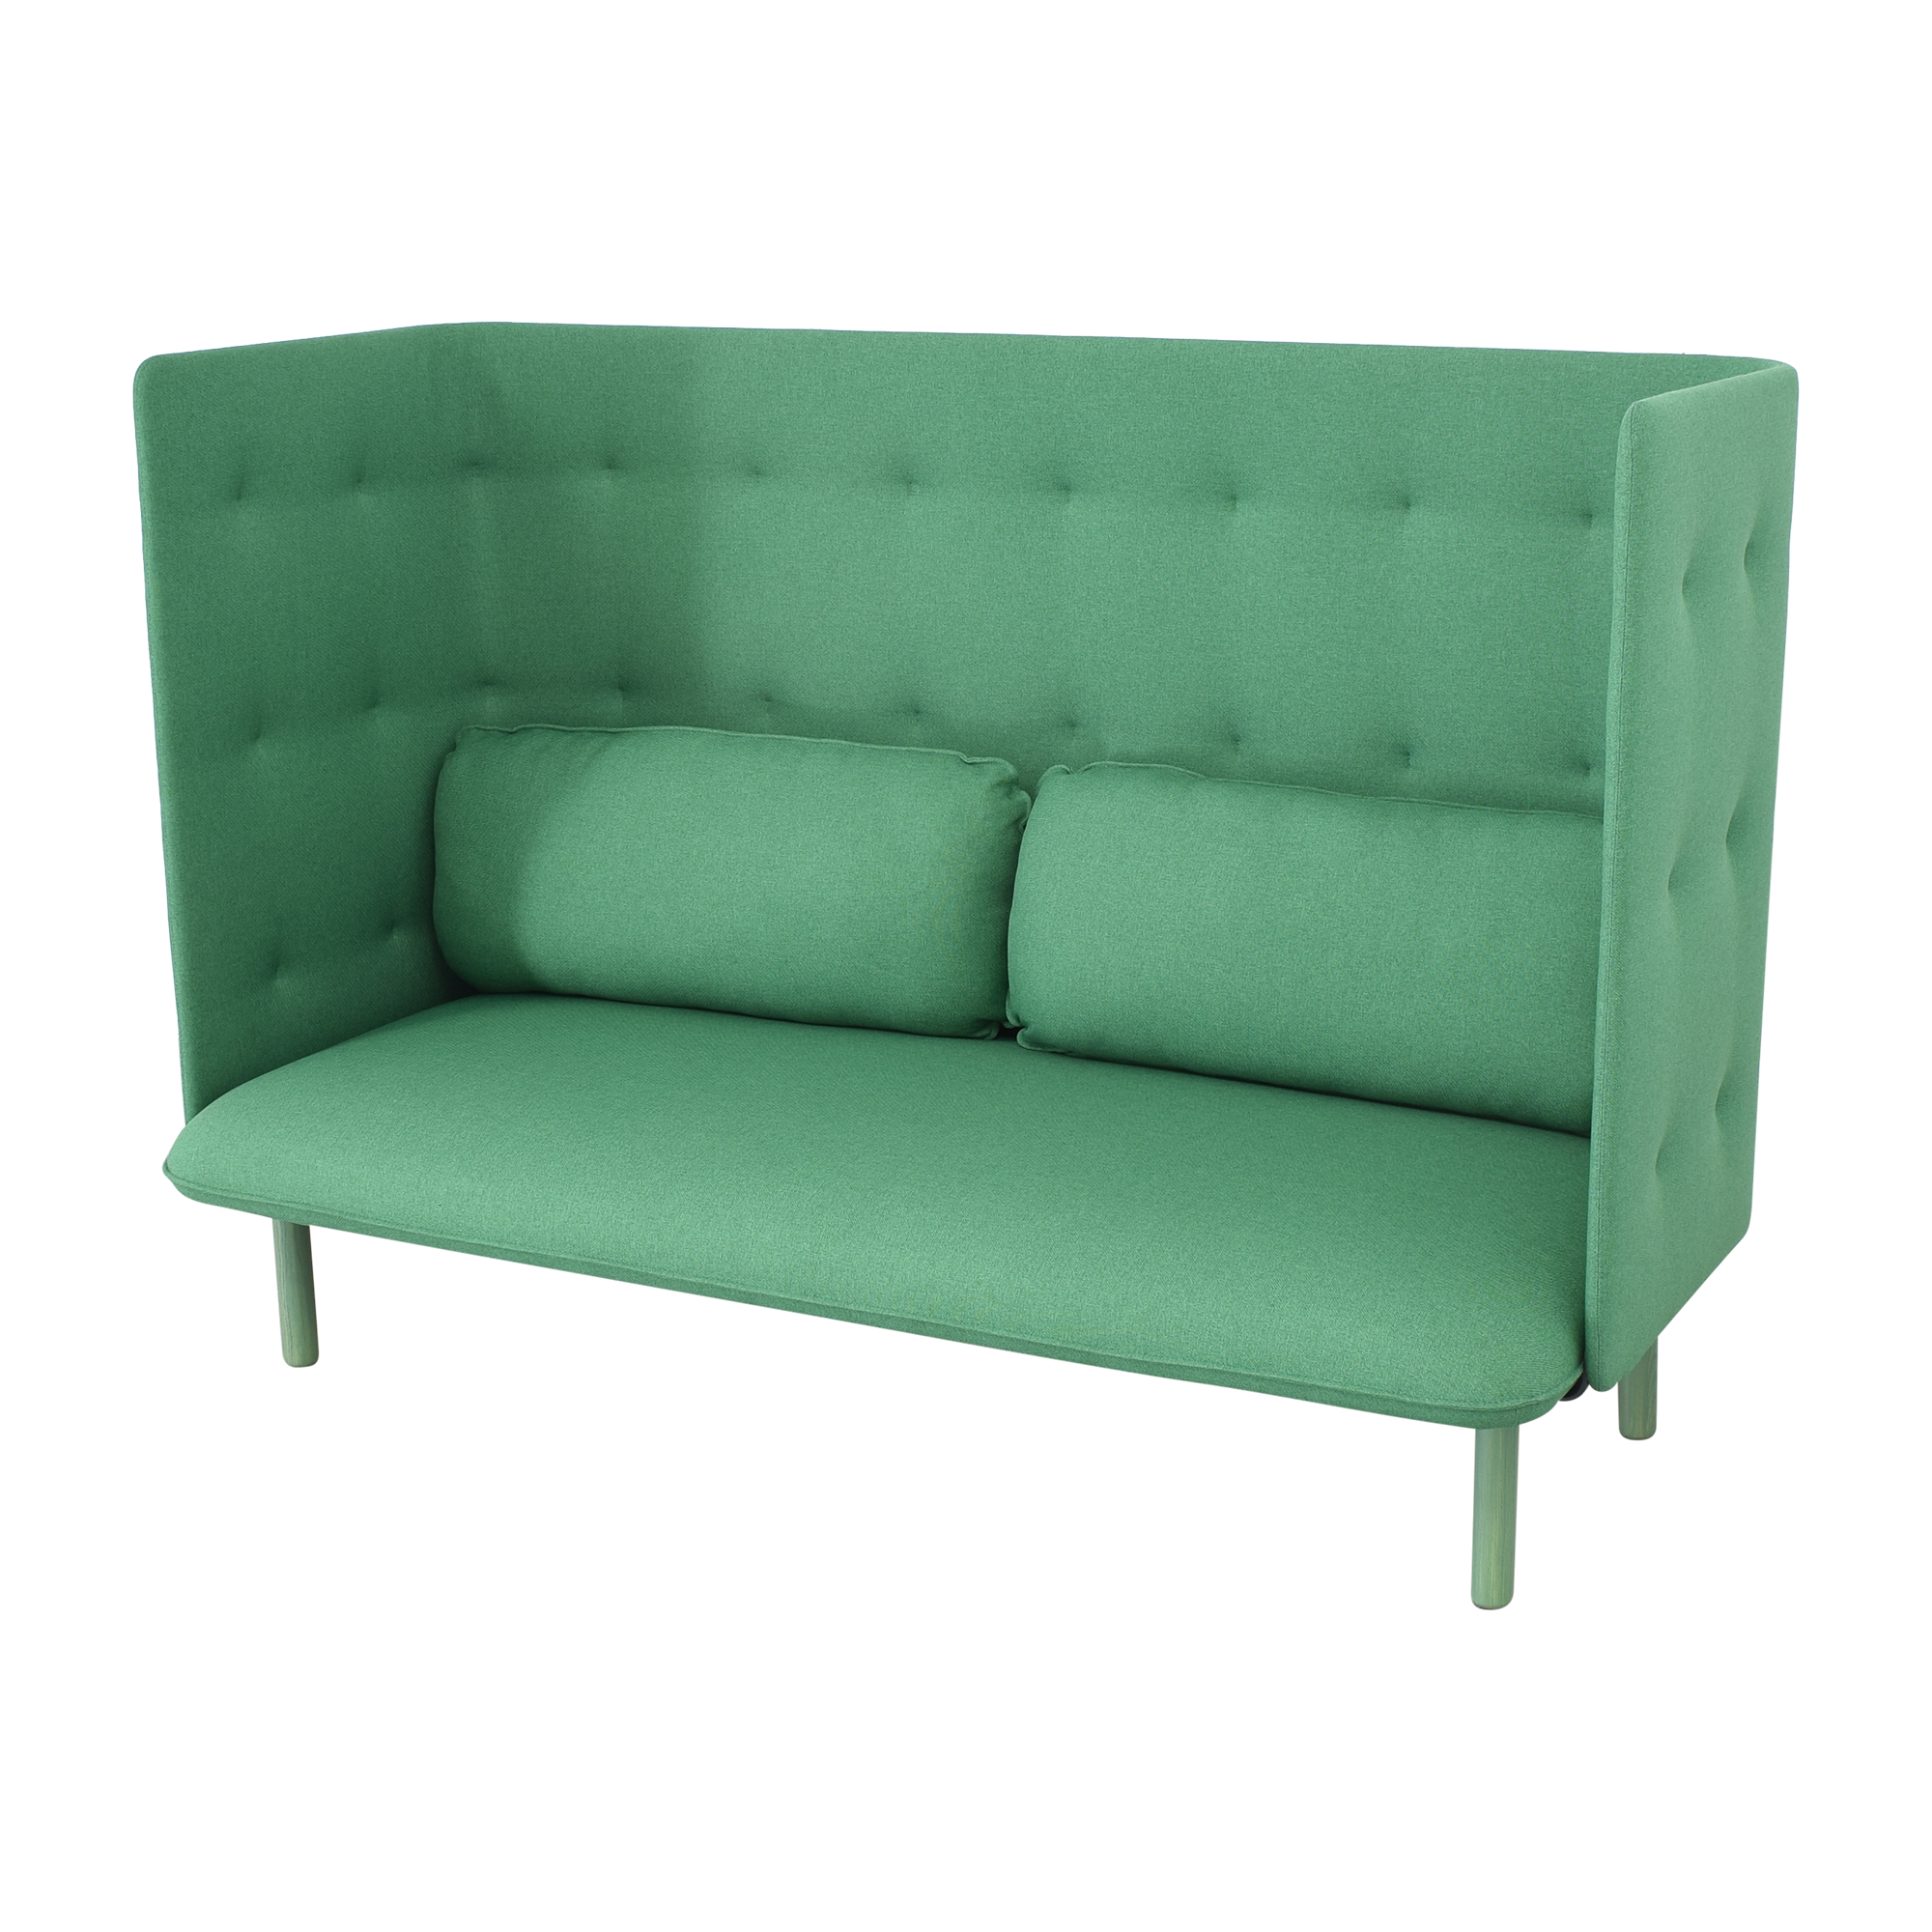 buy Poppin Poppin The Quiet Time QT Lounge Sofa online